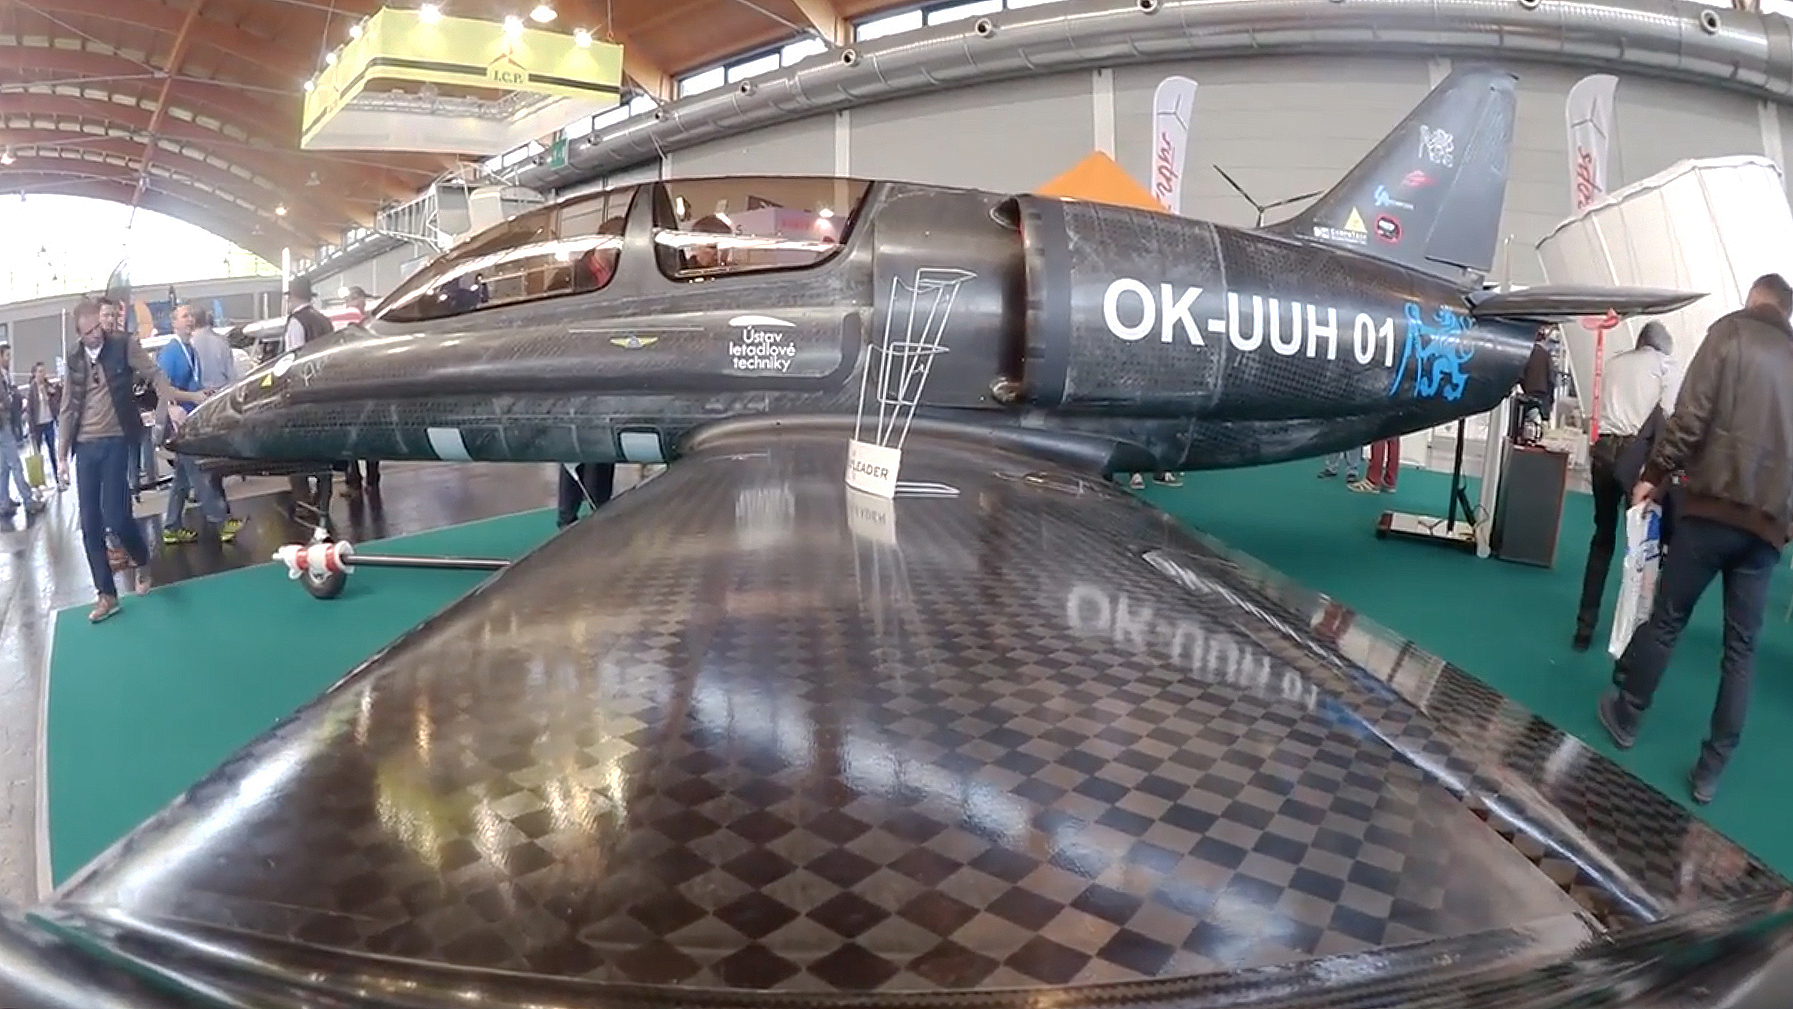 This BMW S1000RR-Powered Airplane Will Blow Your Mind | Motorcyclist